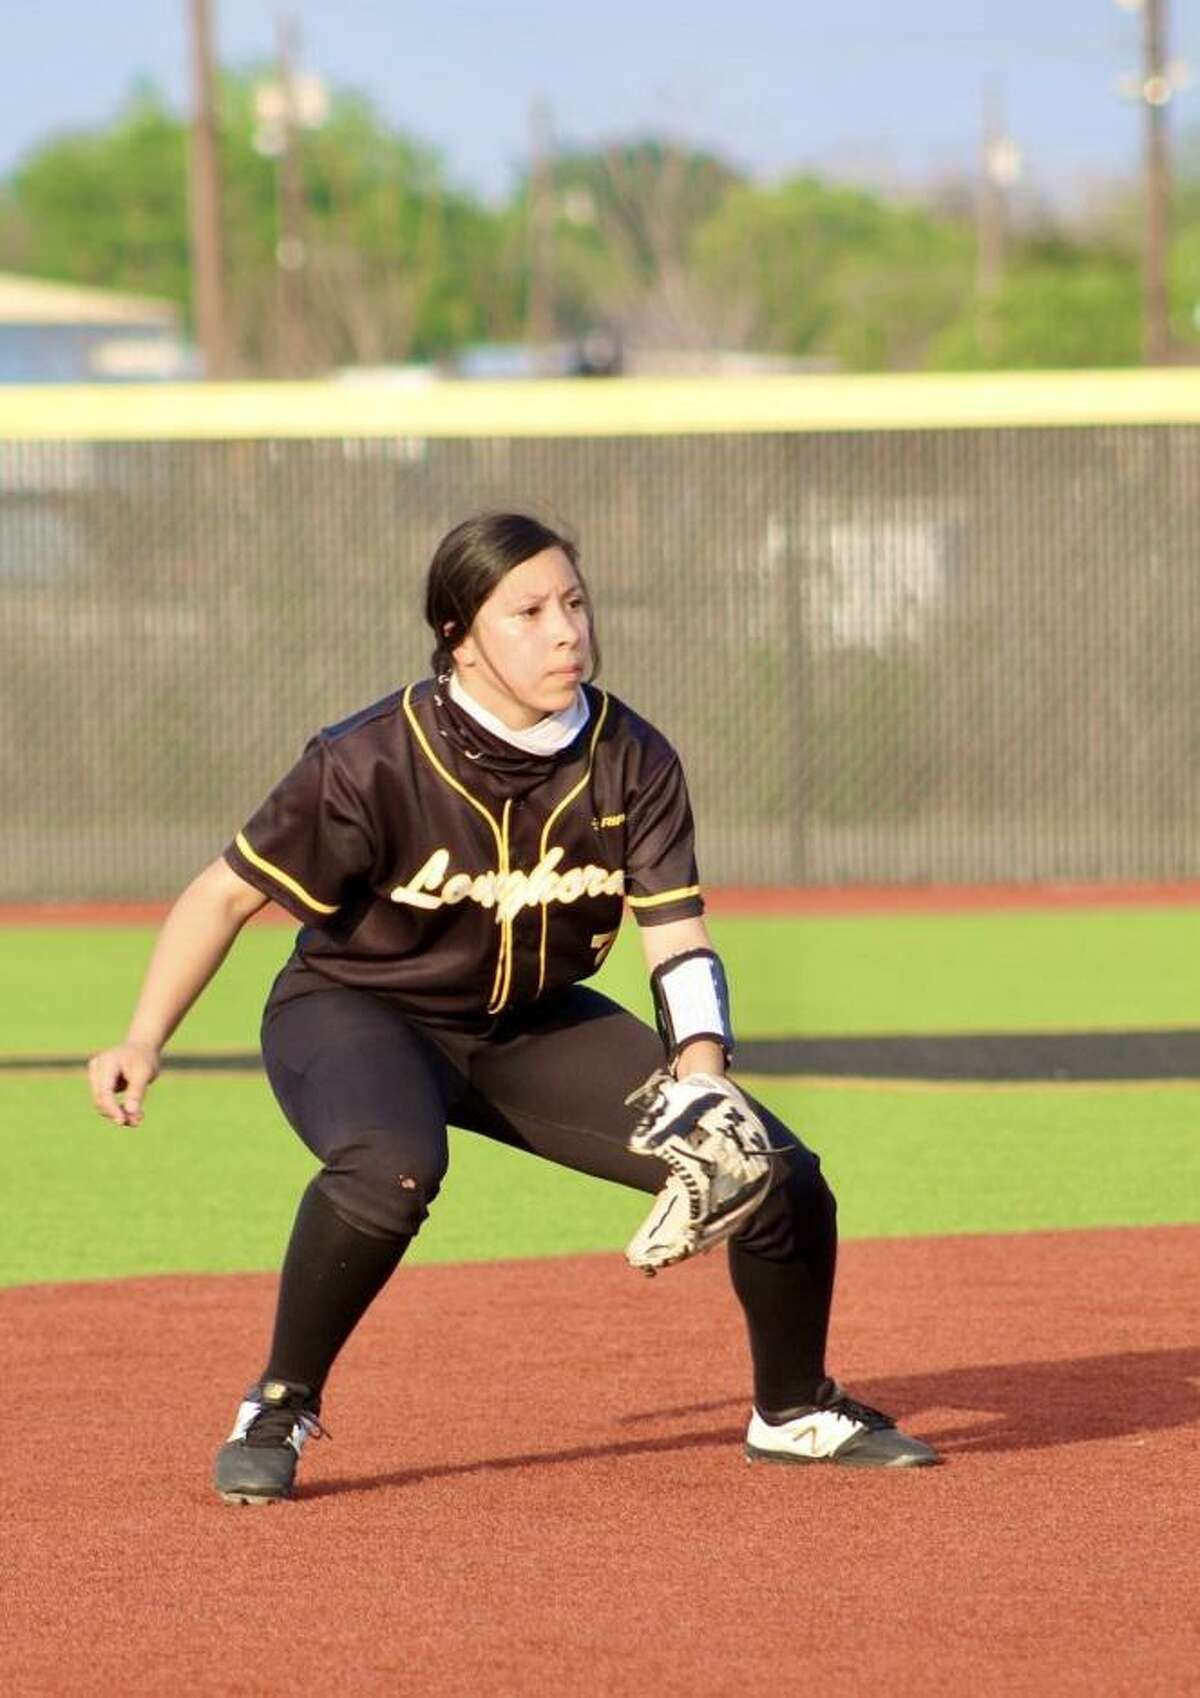 Alexia Alegria hit .450 with 24 RBIs and 20 runs in her freshman season at Hebbronville.